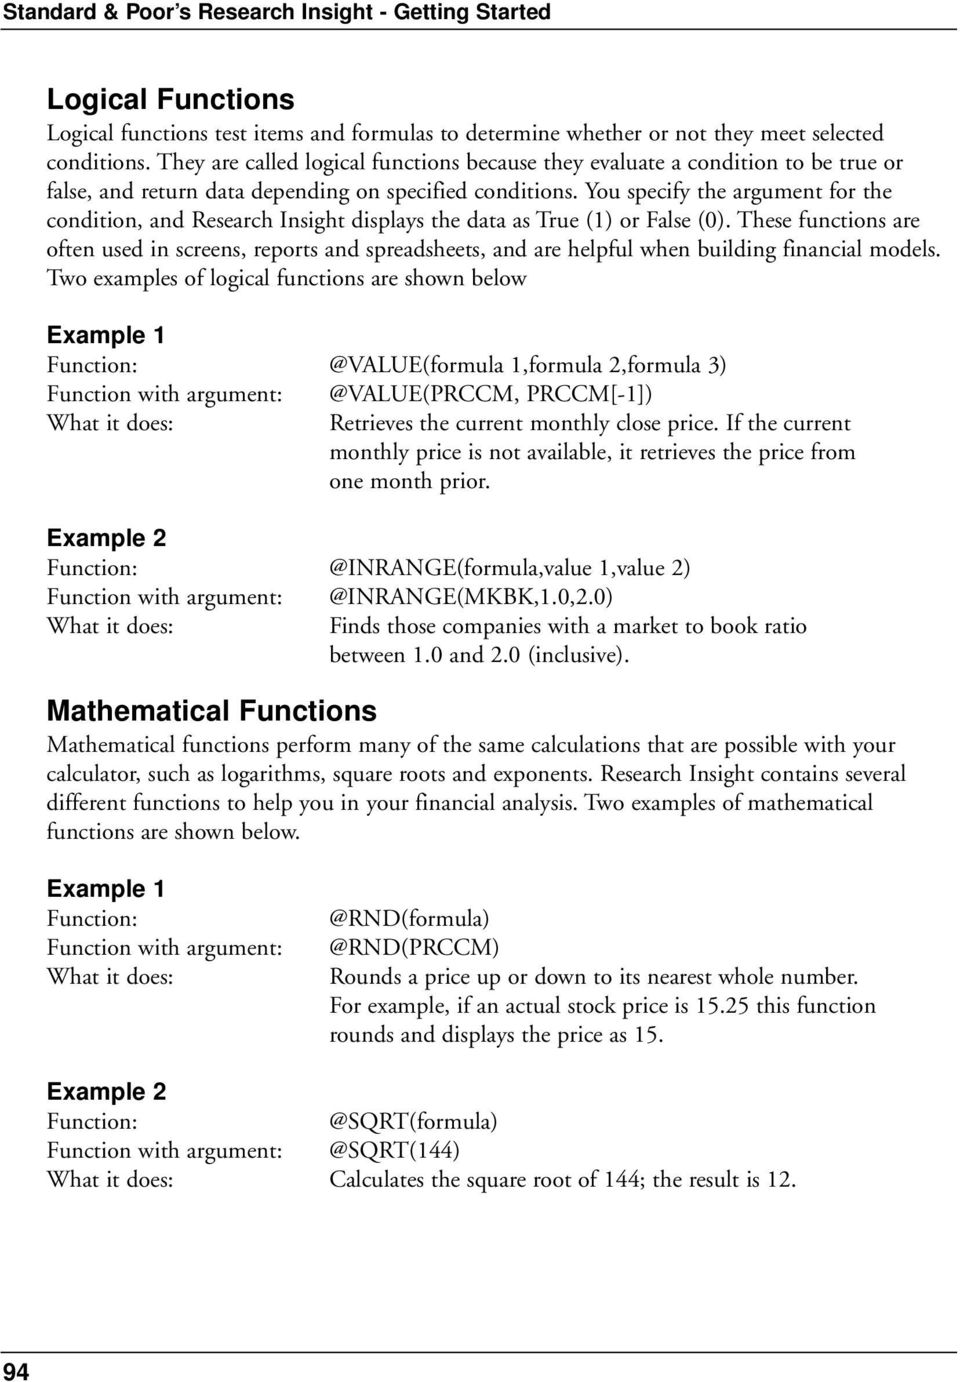 Chapter 7  Using Formulas and Functions - PDF